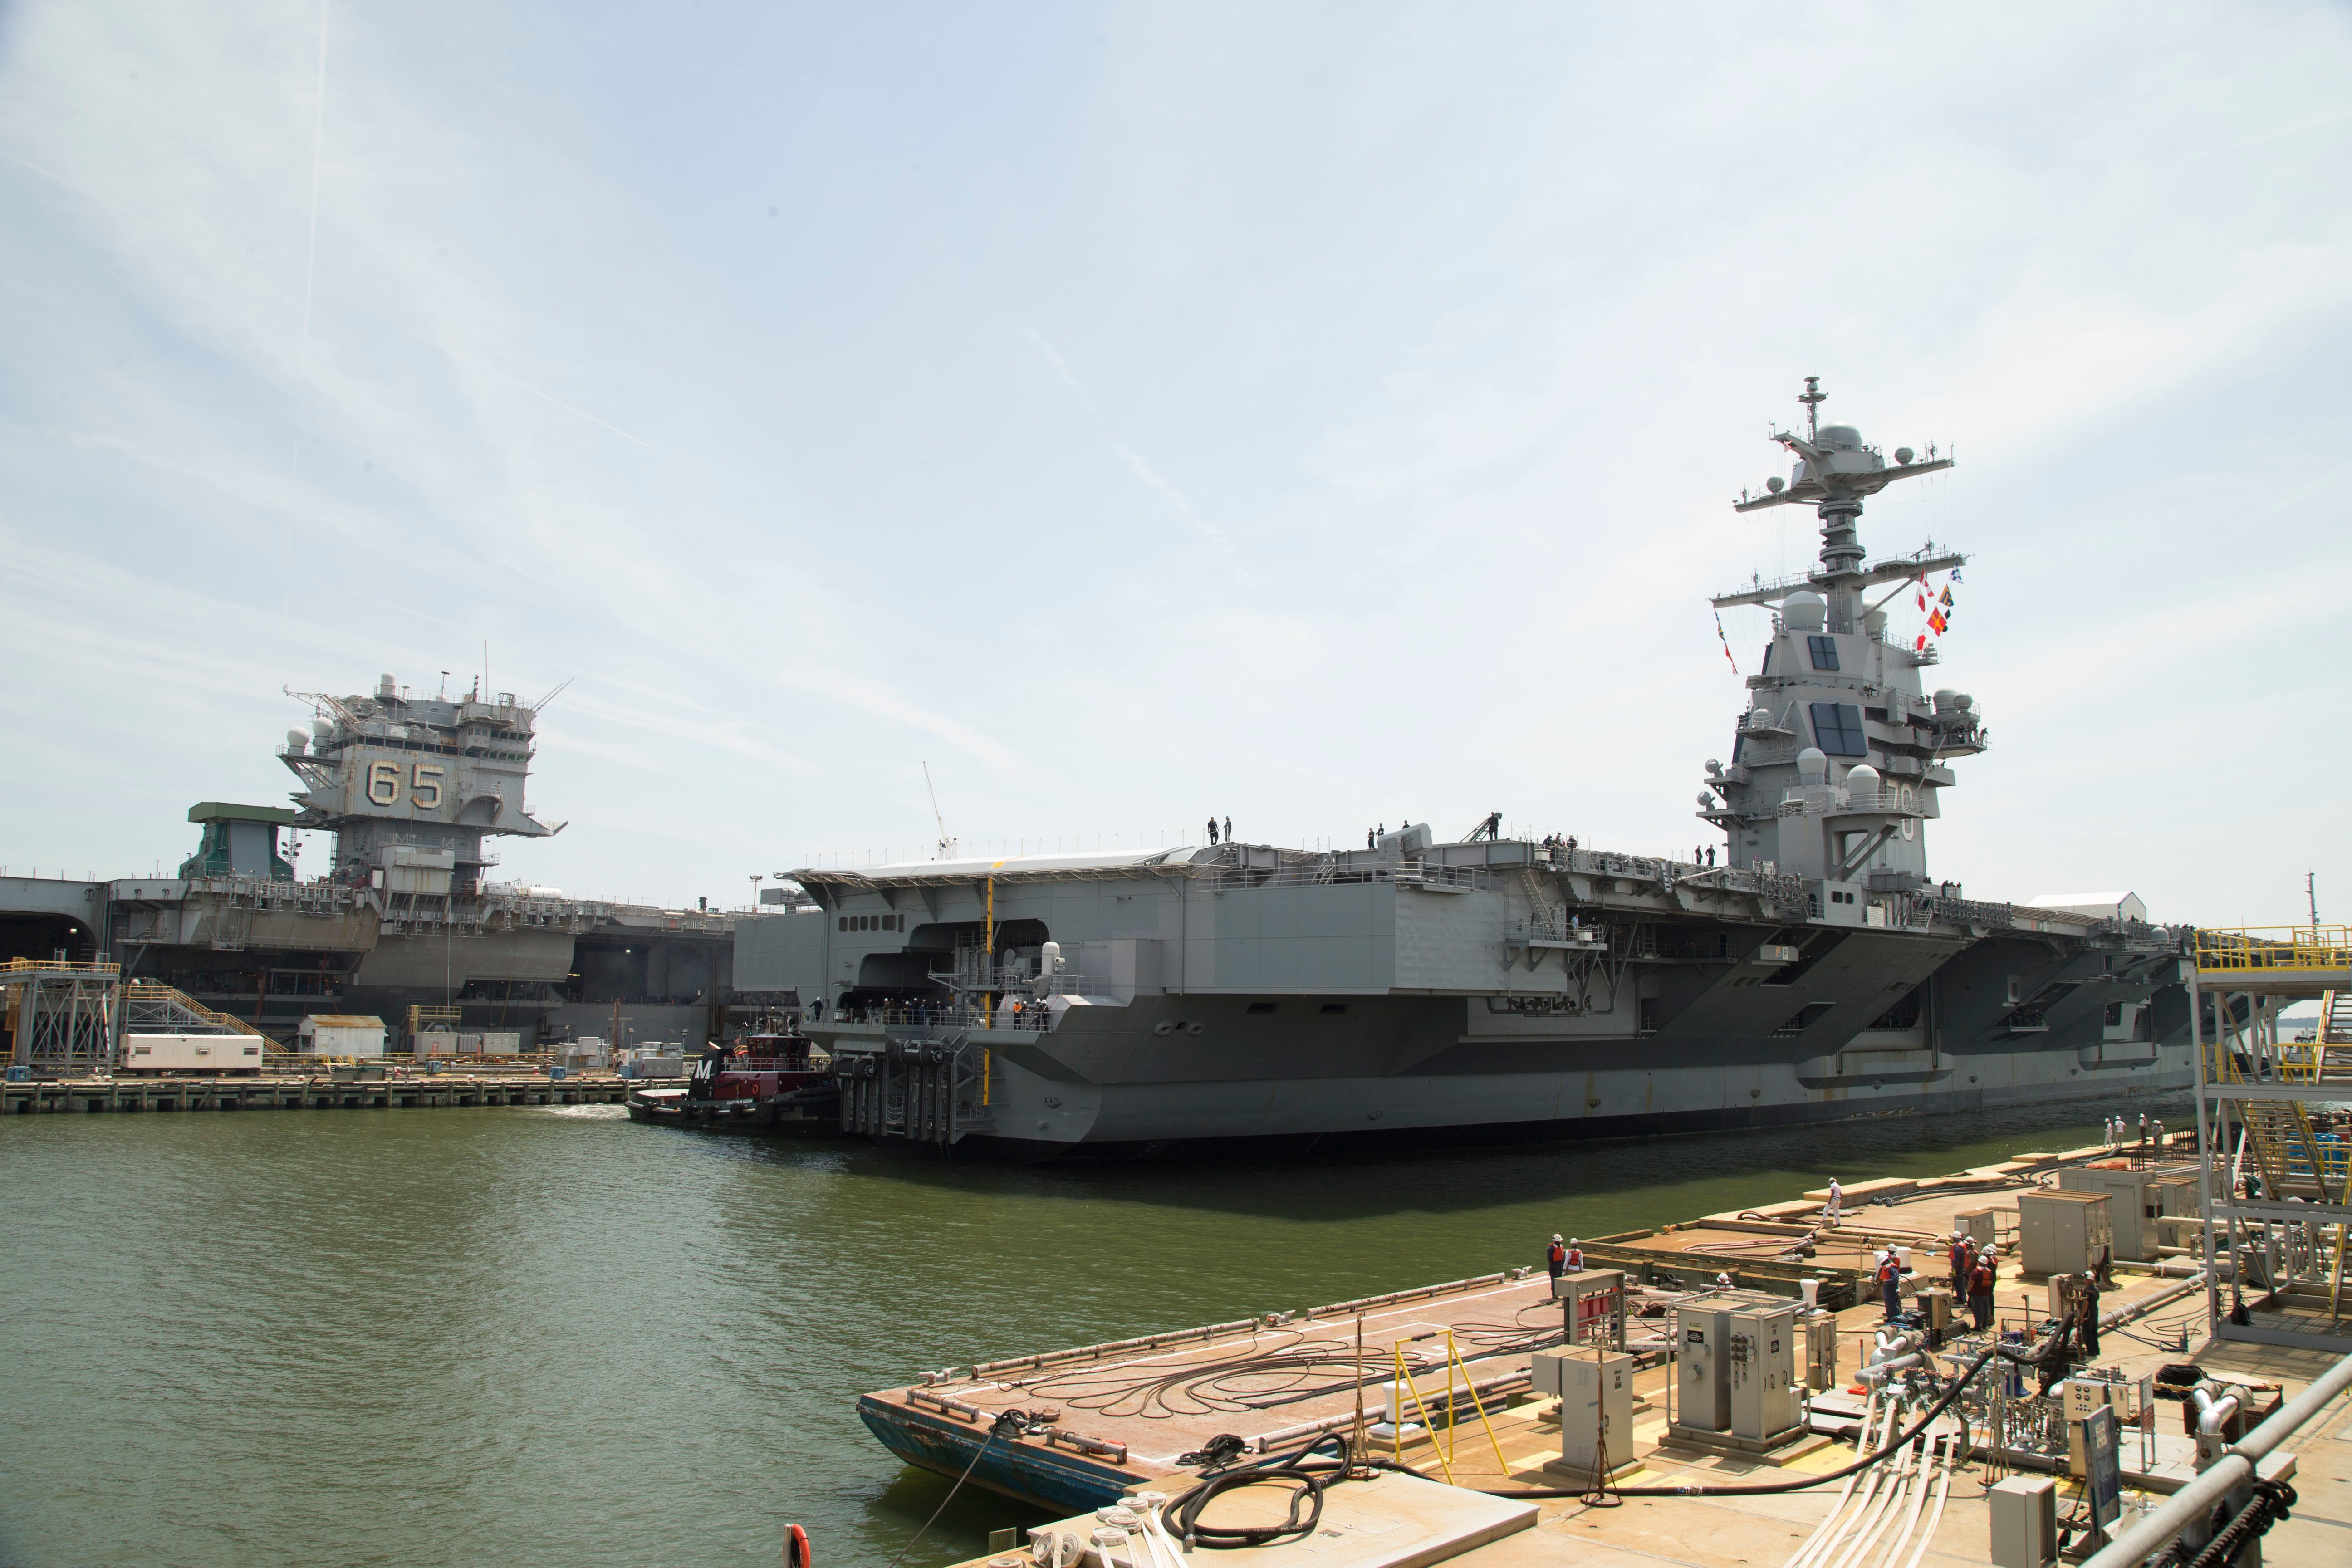 Declining Commercial Nuclear Industry Creates Risk for Navy